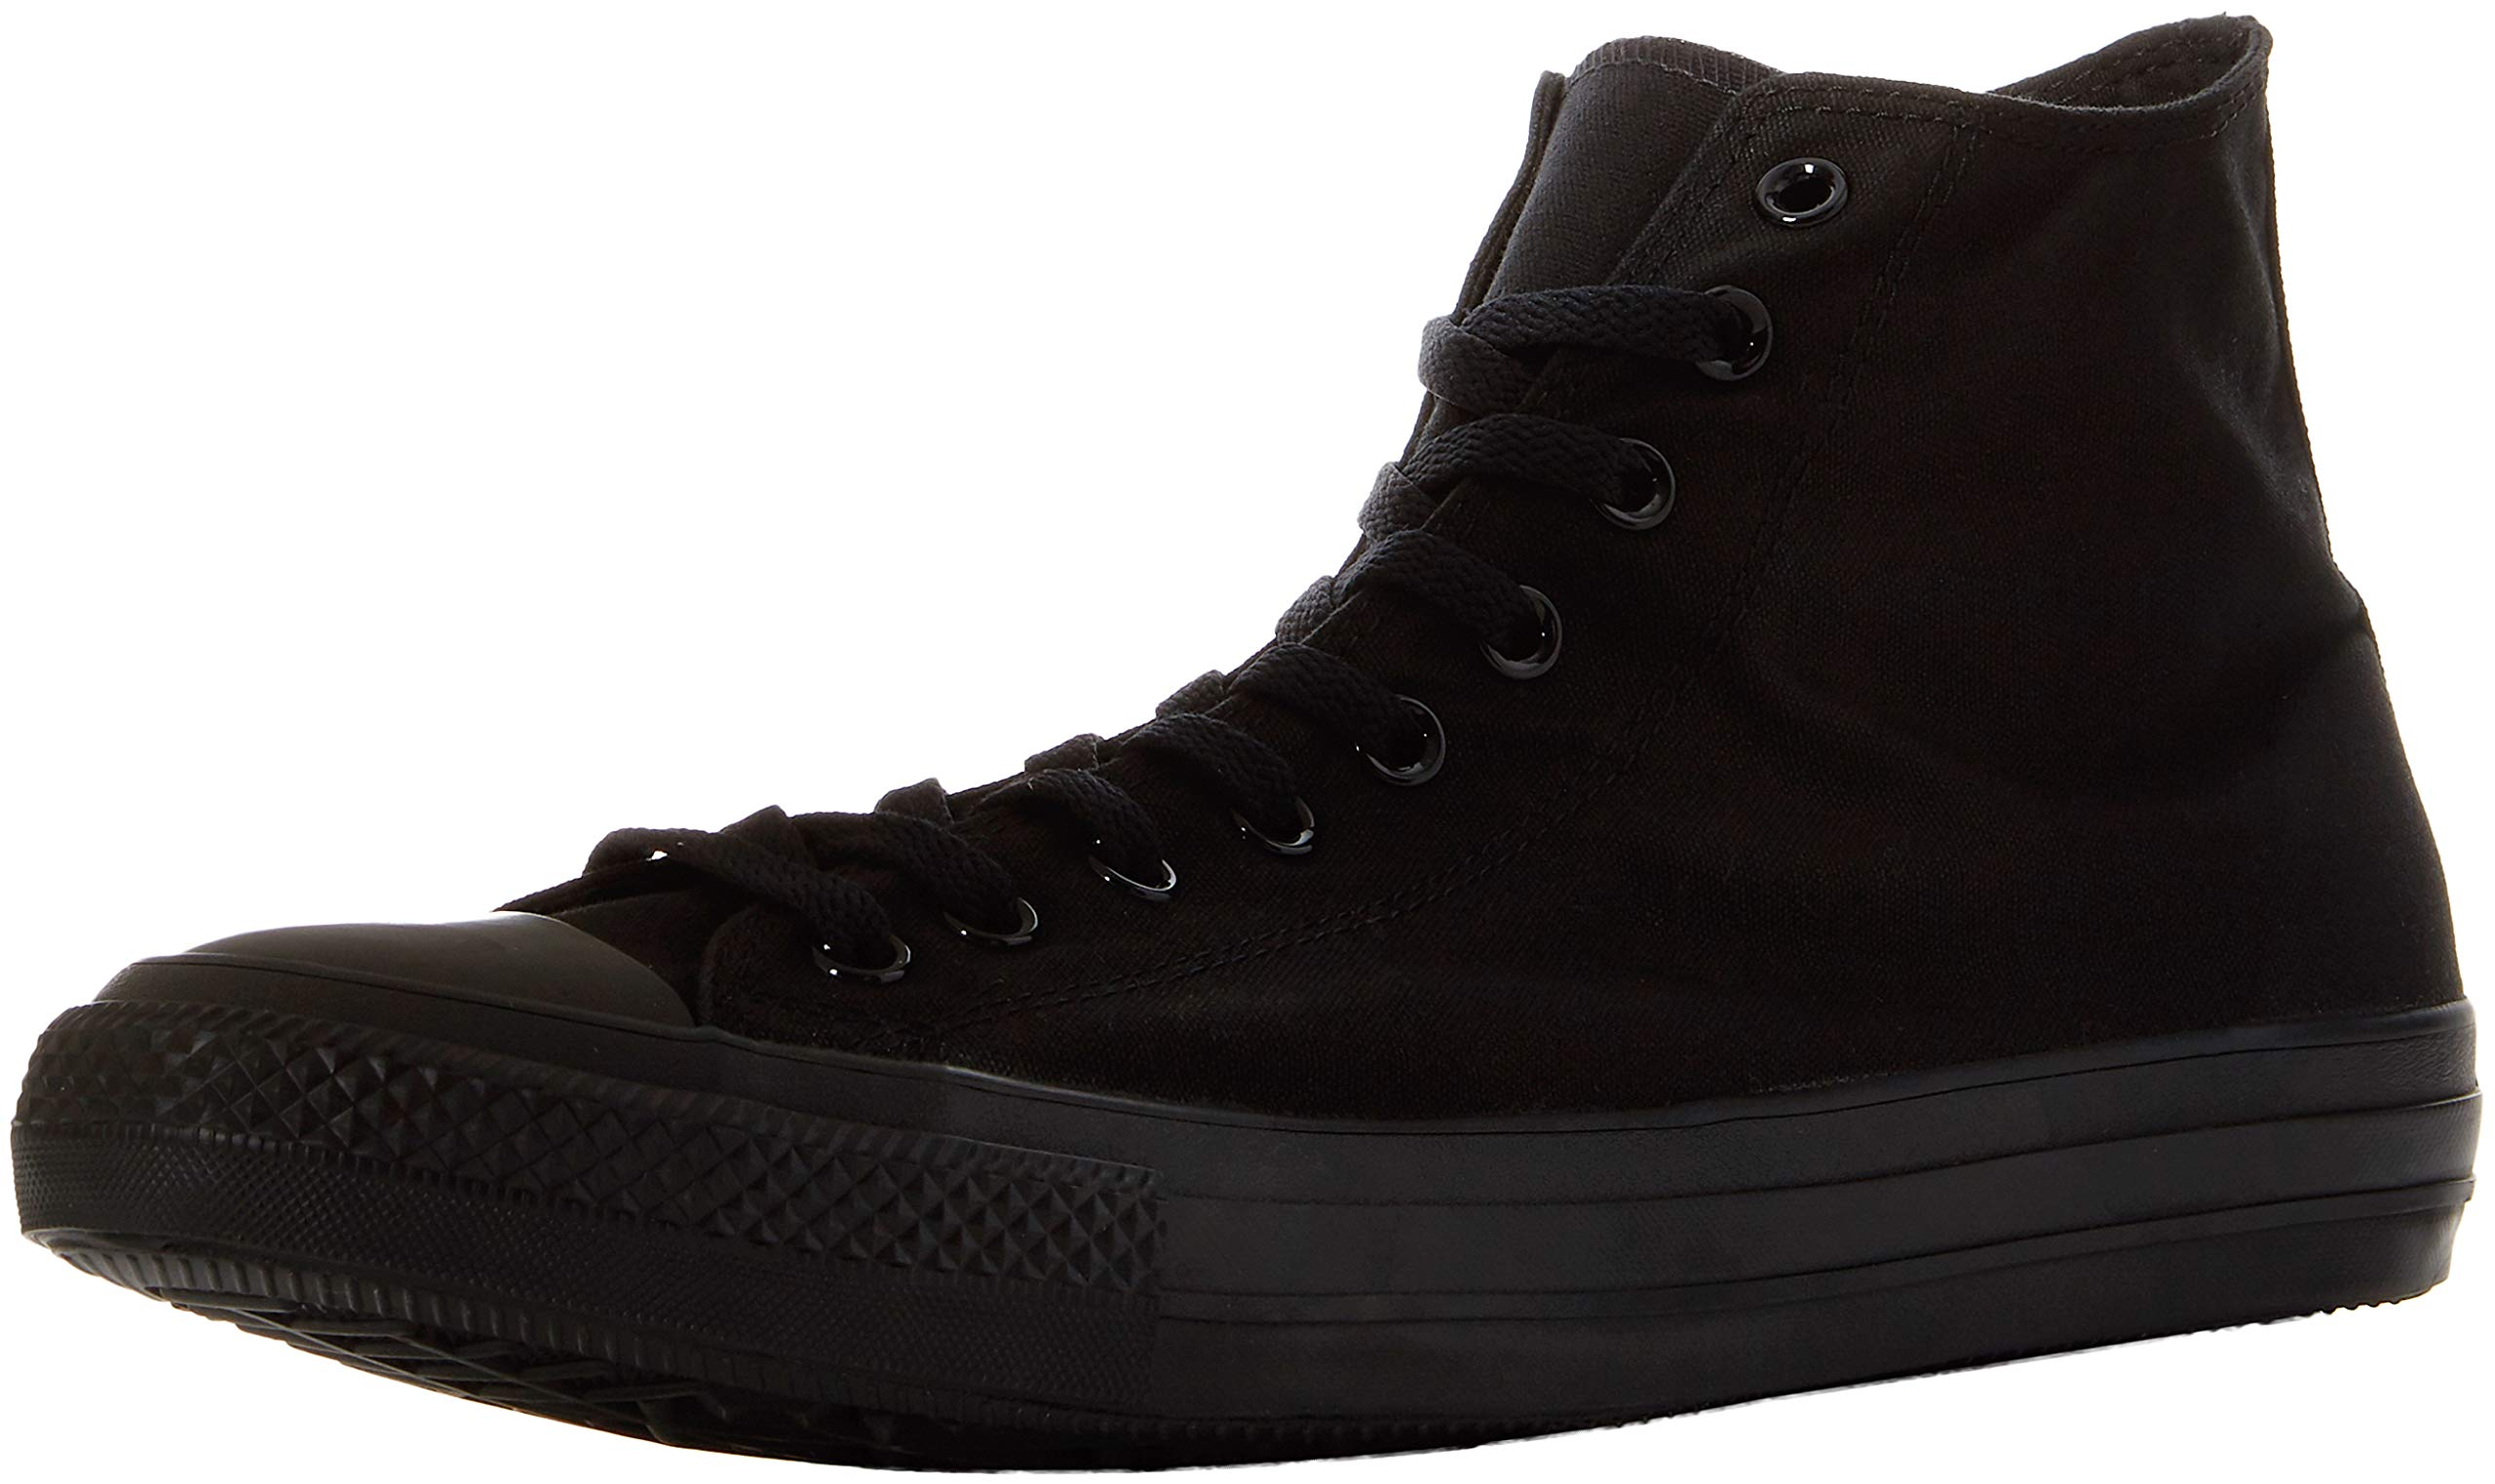 Converse Unisex All Star Leather Hi Sneaker,Black Monochrome,Men's 9.5 M/Women's 11.5 M by Converse